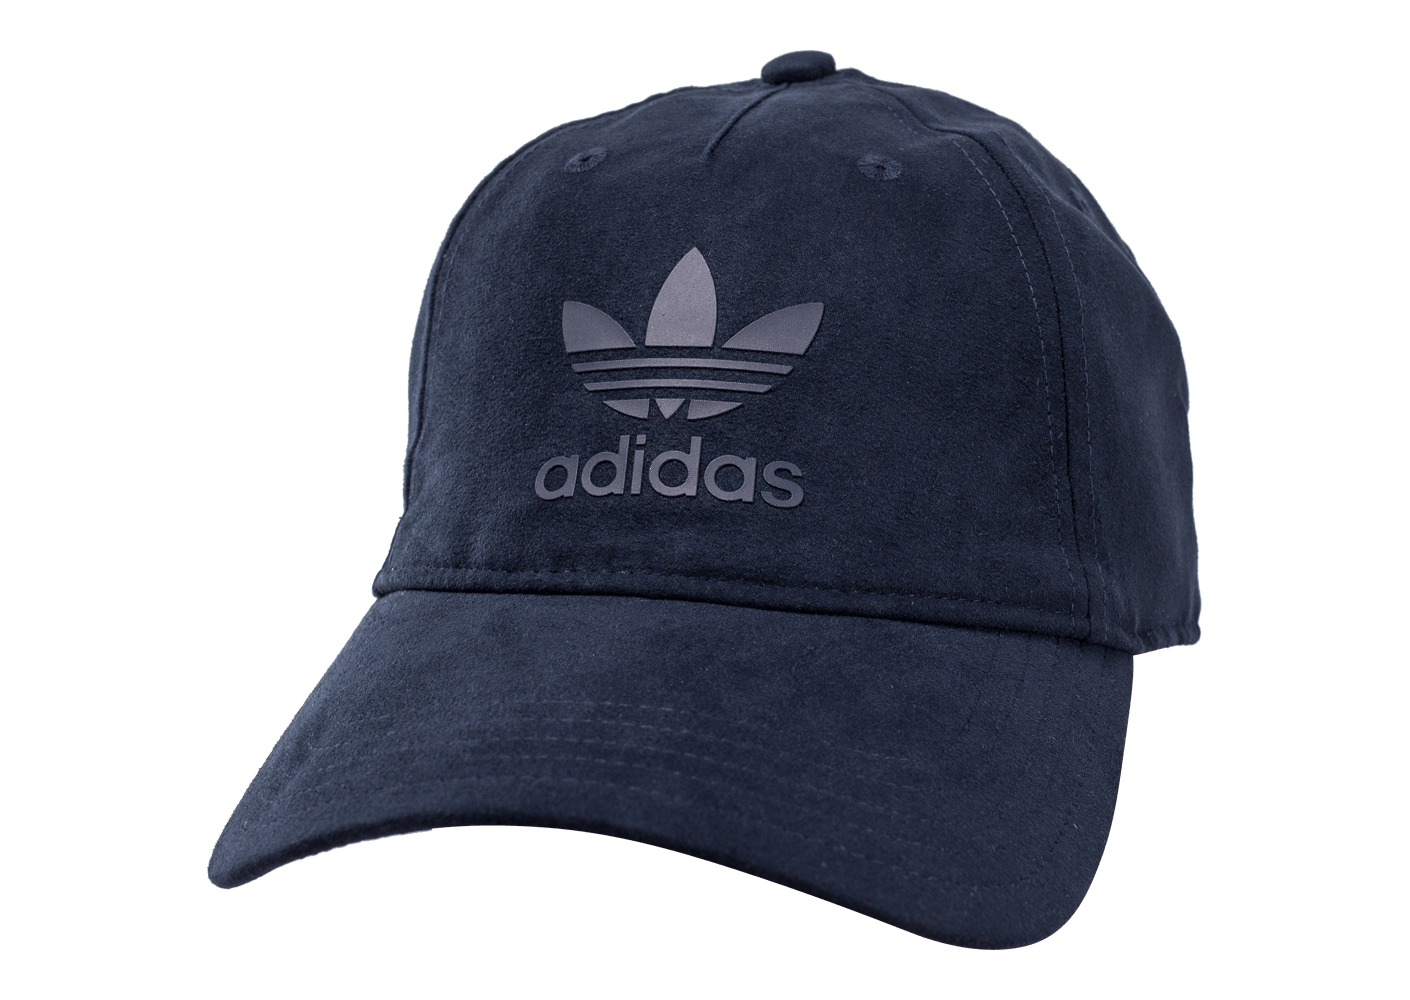 casquette adidas style